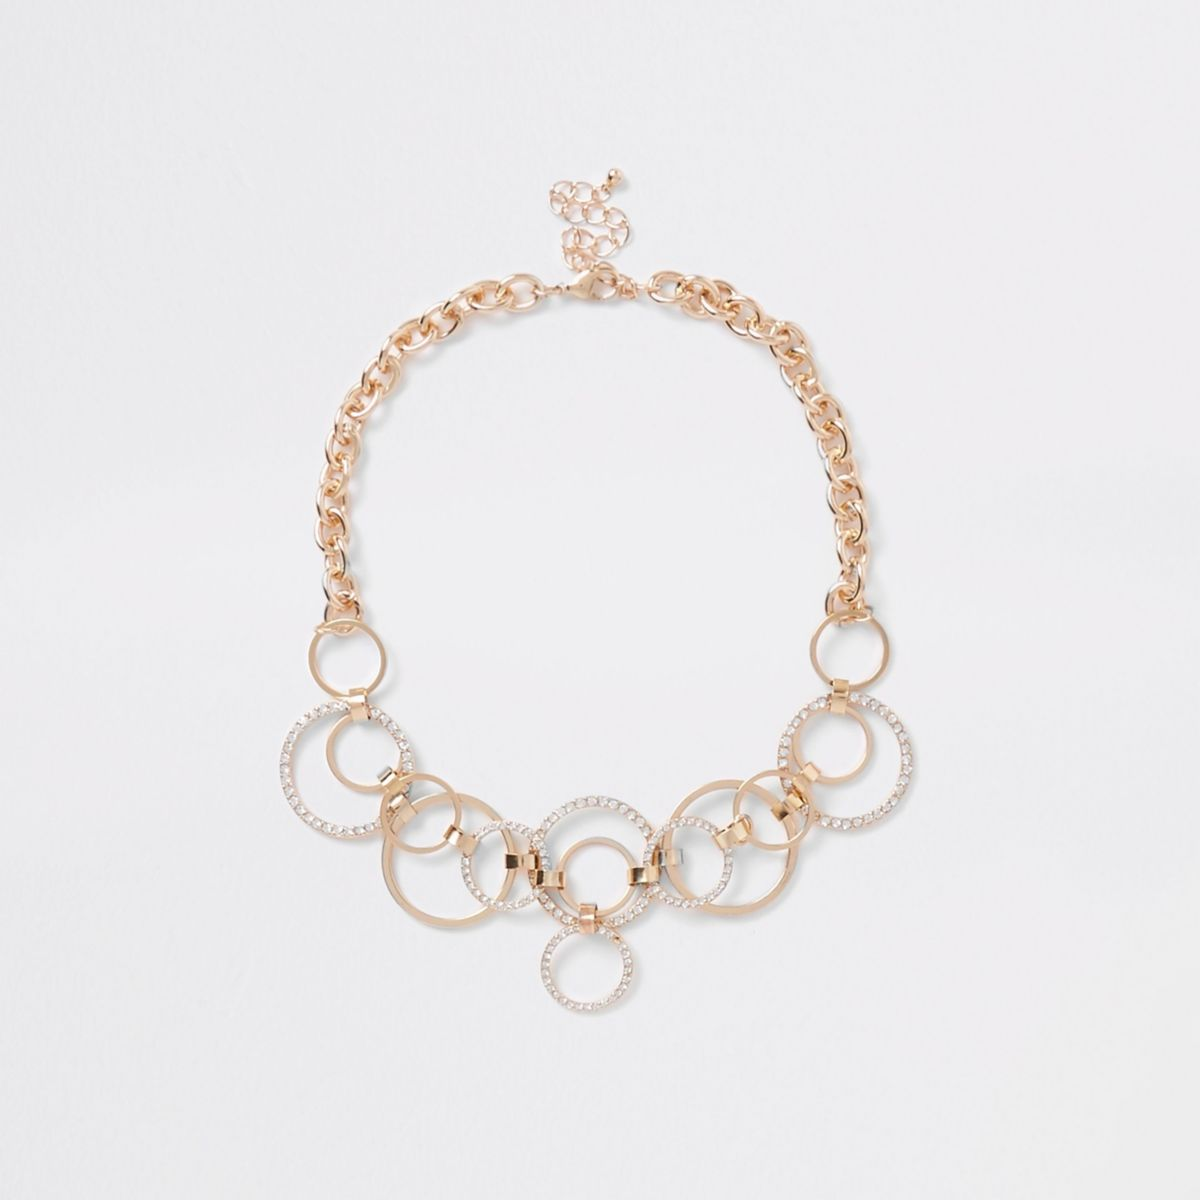 Gold tone pave ring chain statement necklace